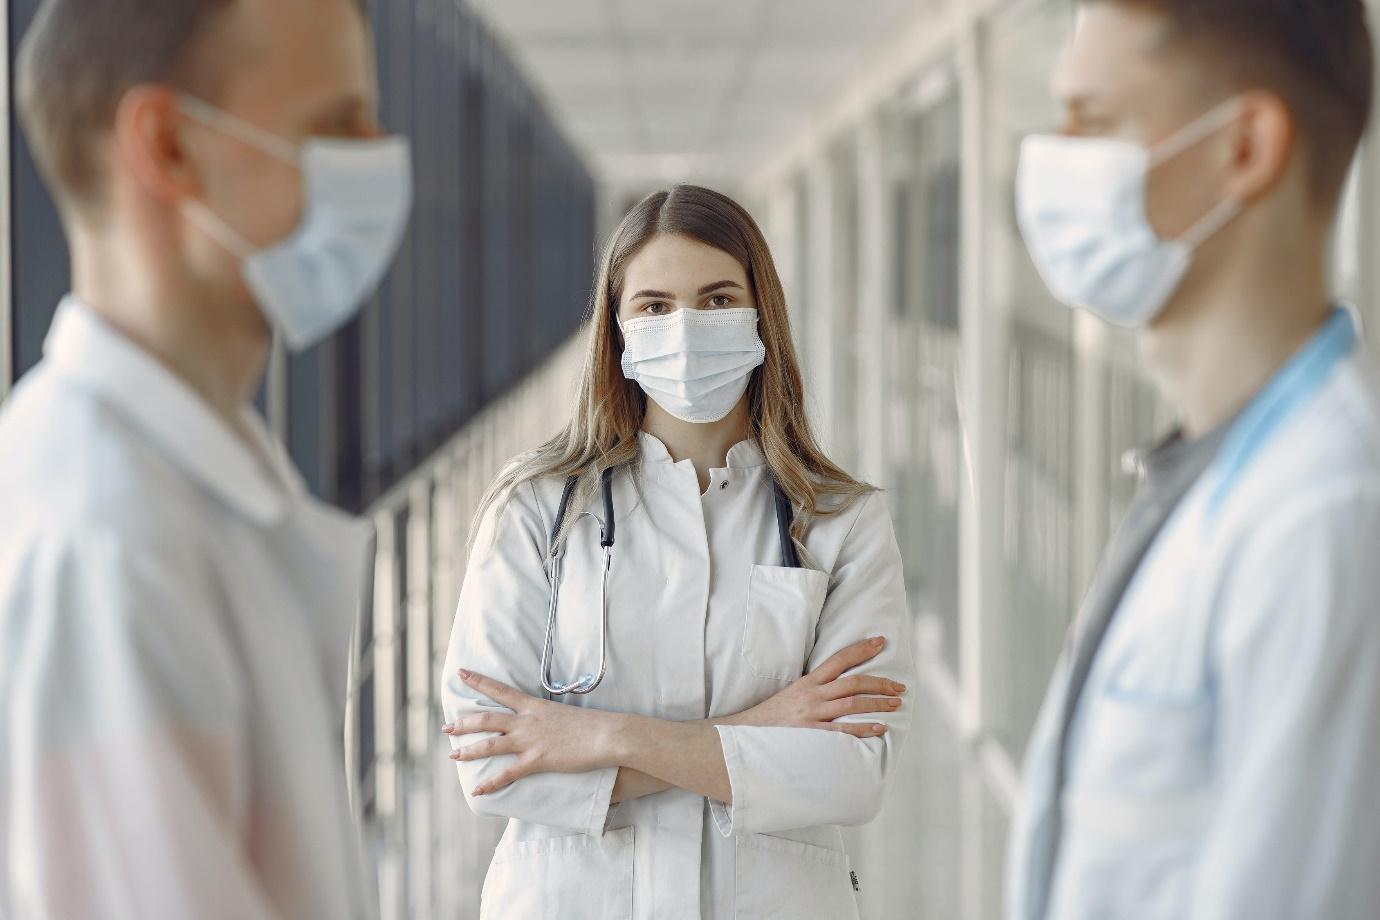 The Heroes of the Pandemic: Five Steps the Nurses Took To Help